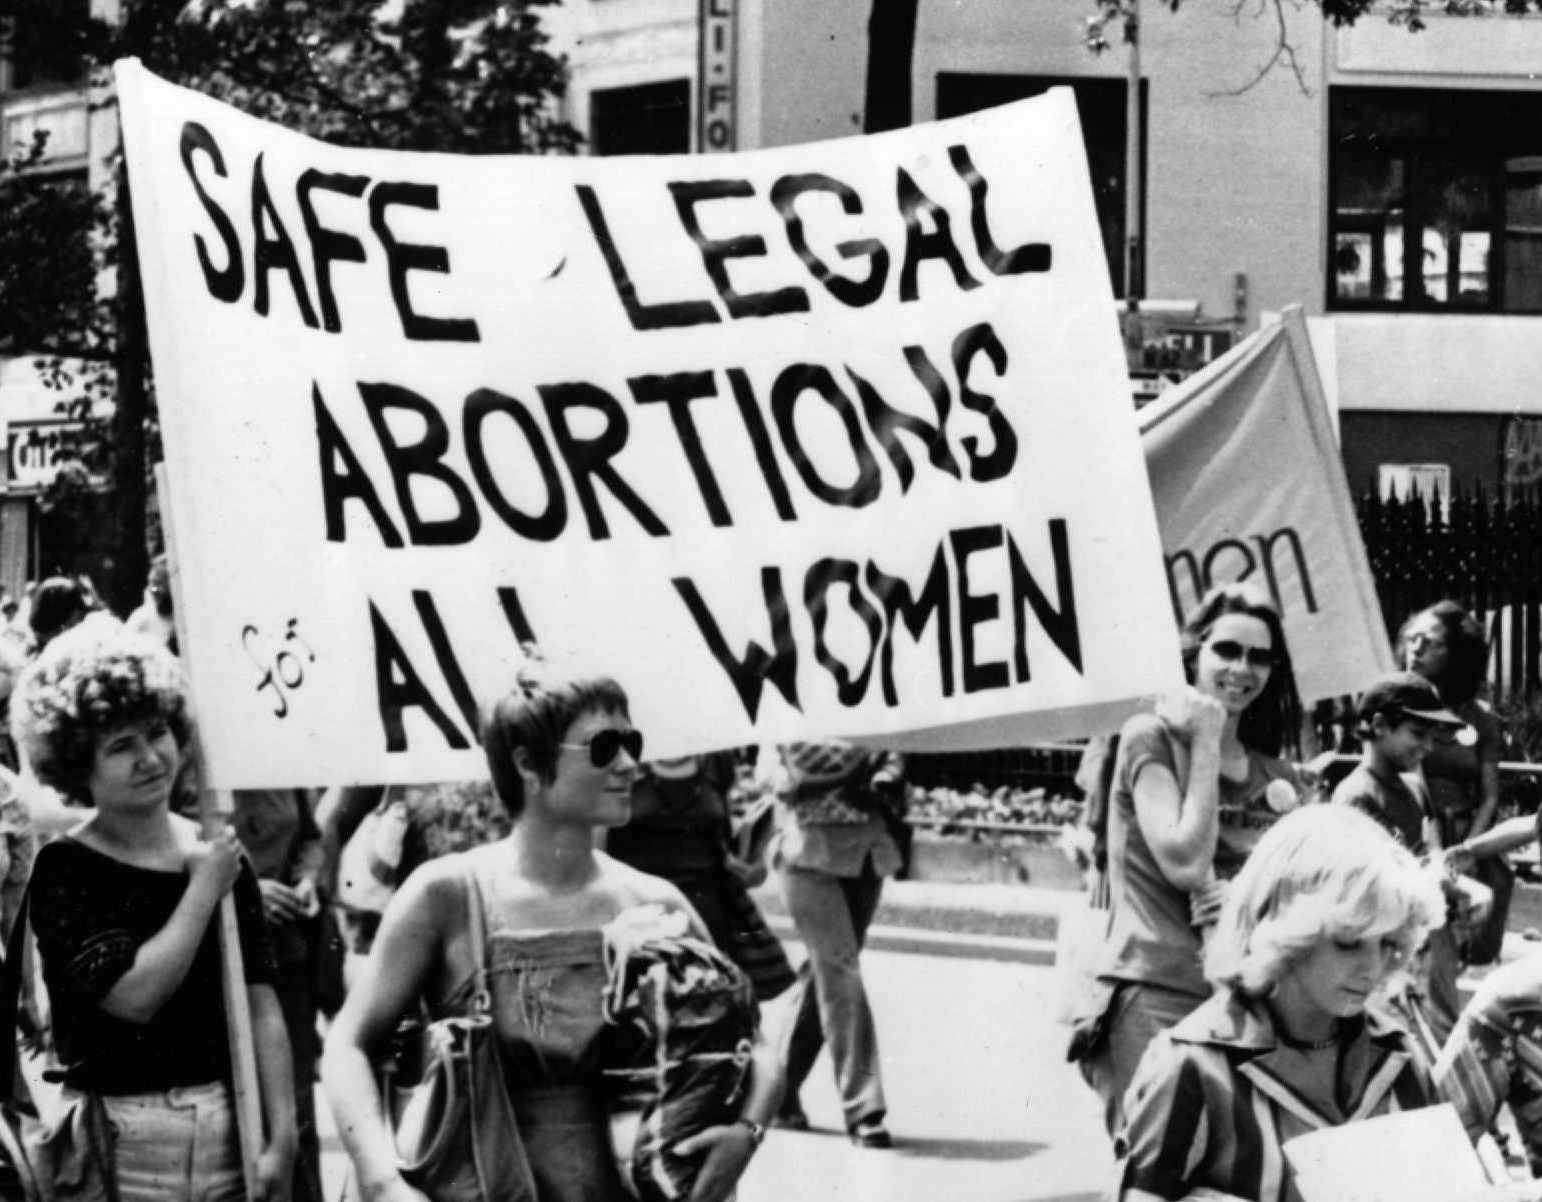 Abortion: Women's Rights...and Wrongs